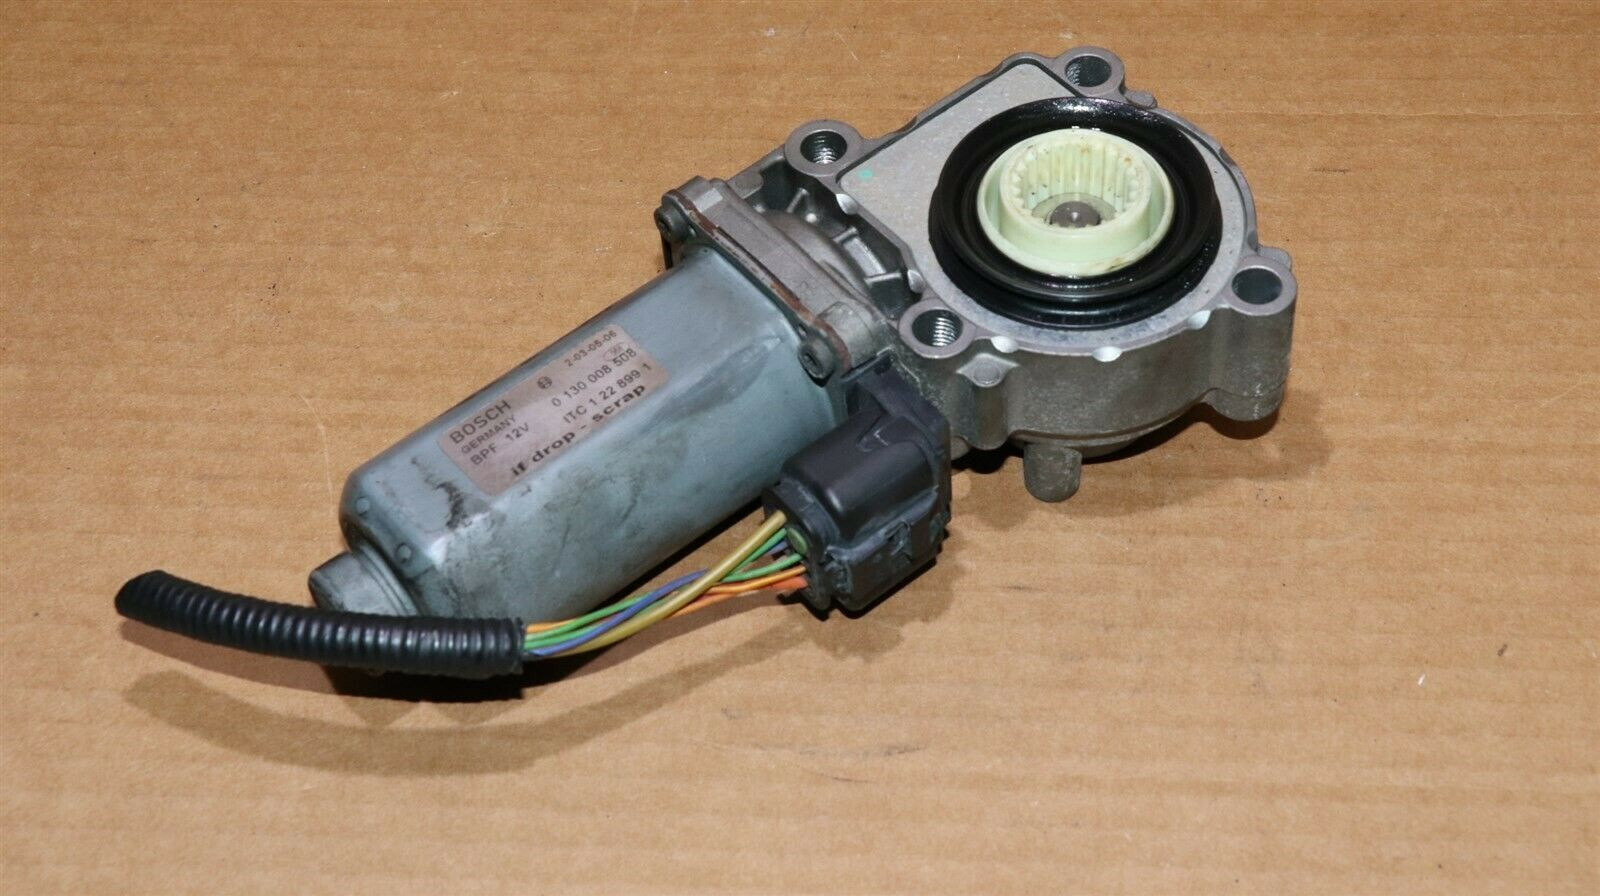 06-09 LandRover Discovery LR3 Transfer Case 4WD 4x4 Shift Actuator Motor